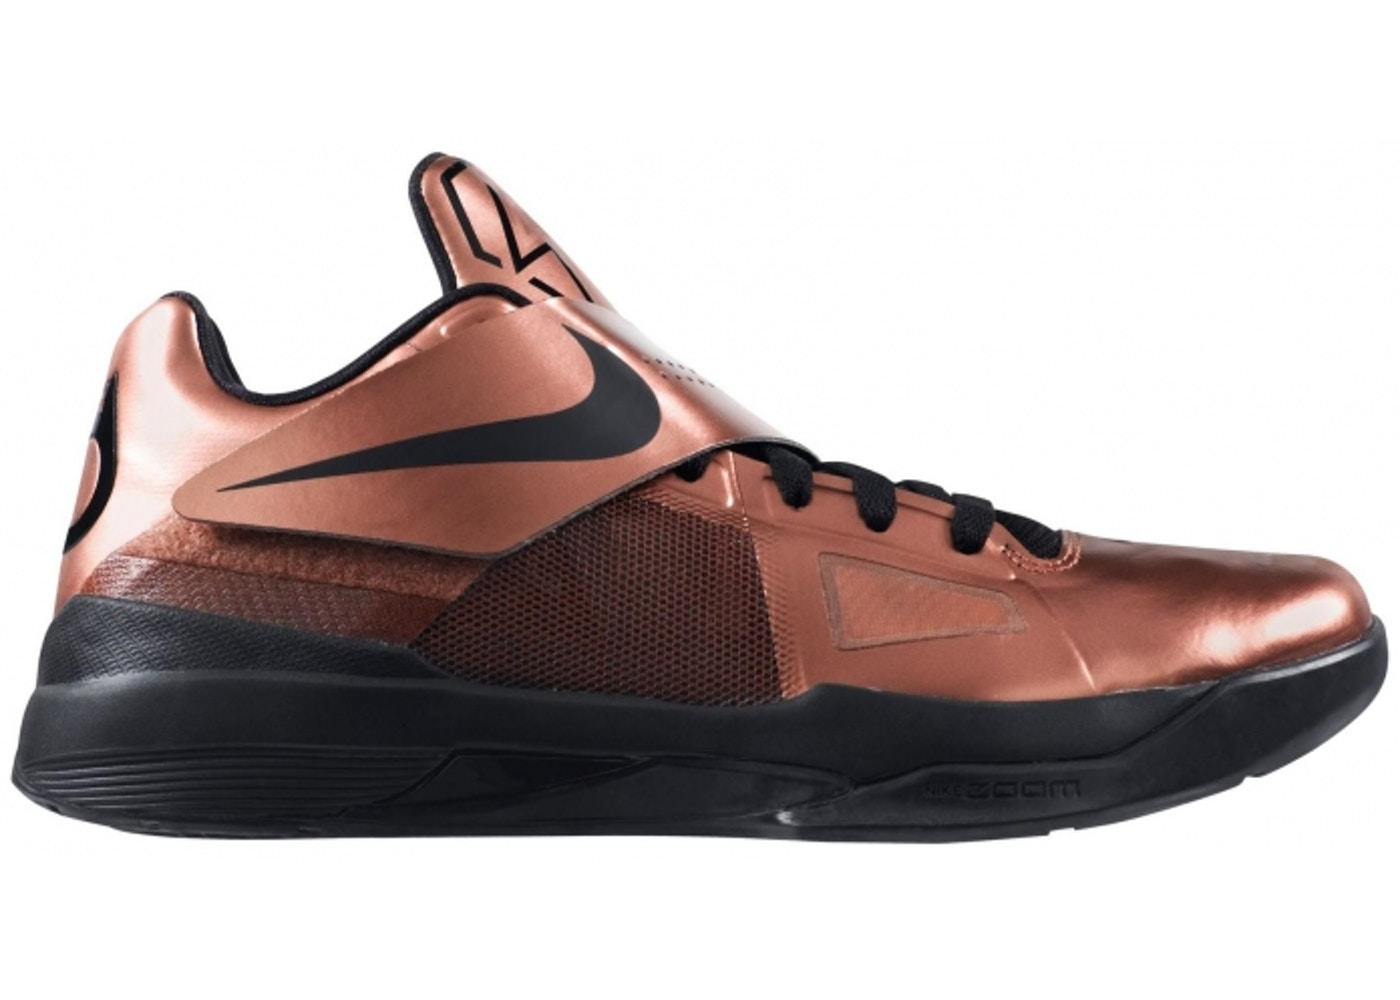 KD 4 Copper (Christmas) - 473679-700